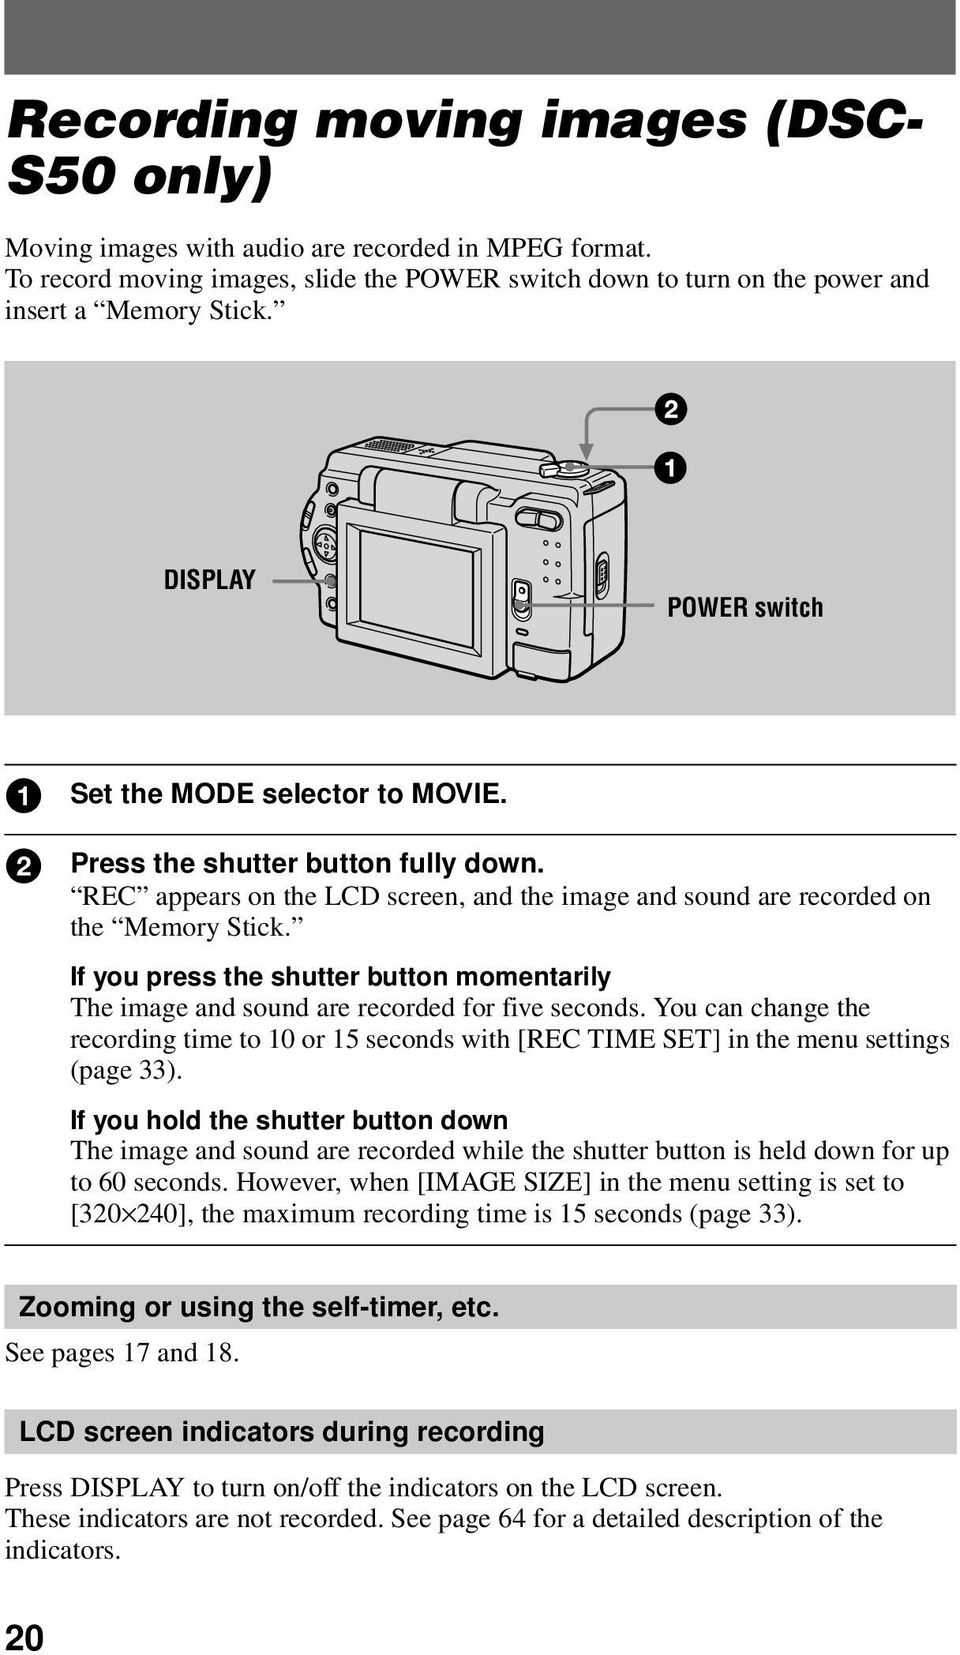 If you press the shutter button momentarily The image and sound are recorded for five seconds. You can change the recording time to 10 or 15 seconds with [REC TIME SET] in the menu settings (page 33).